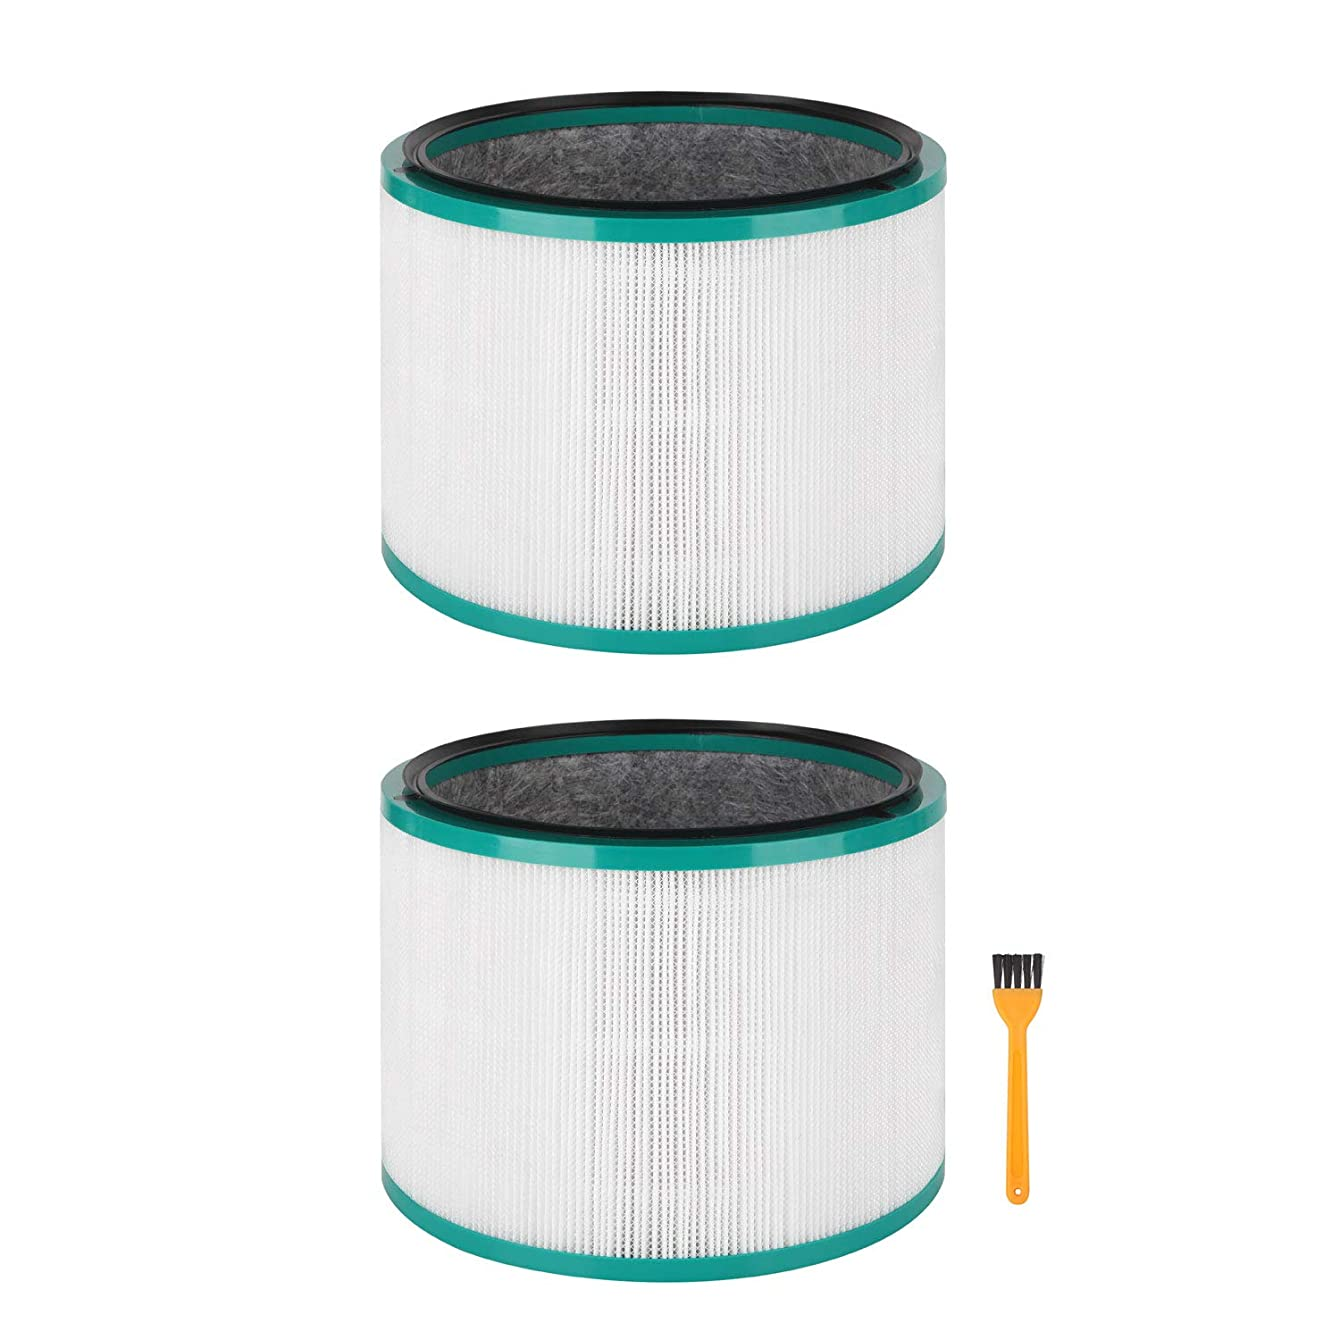 Colorfullife 2 Pack Replacement HEPA Filter for Dyson Desk Purifier for Dyson Pure Cool Link Desk, for Dyson Pure Hot + Cool Link, Replaces Part # 968125-03